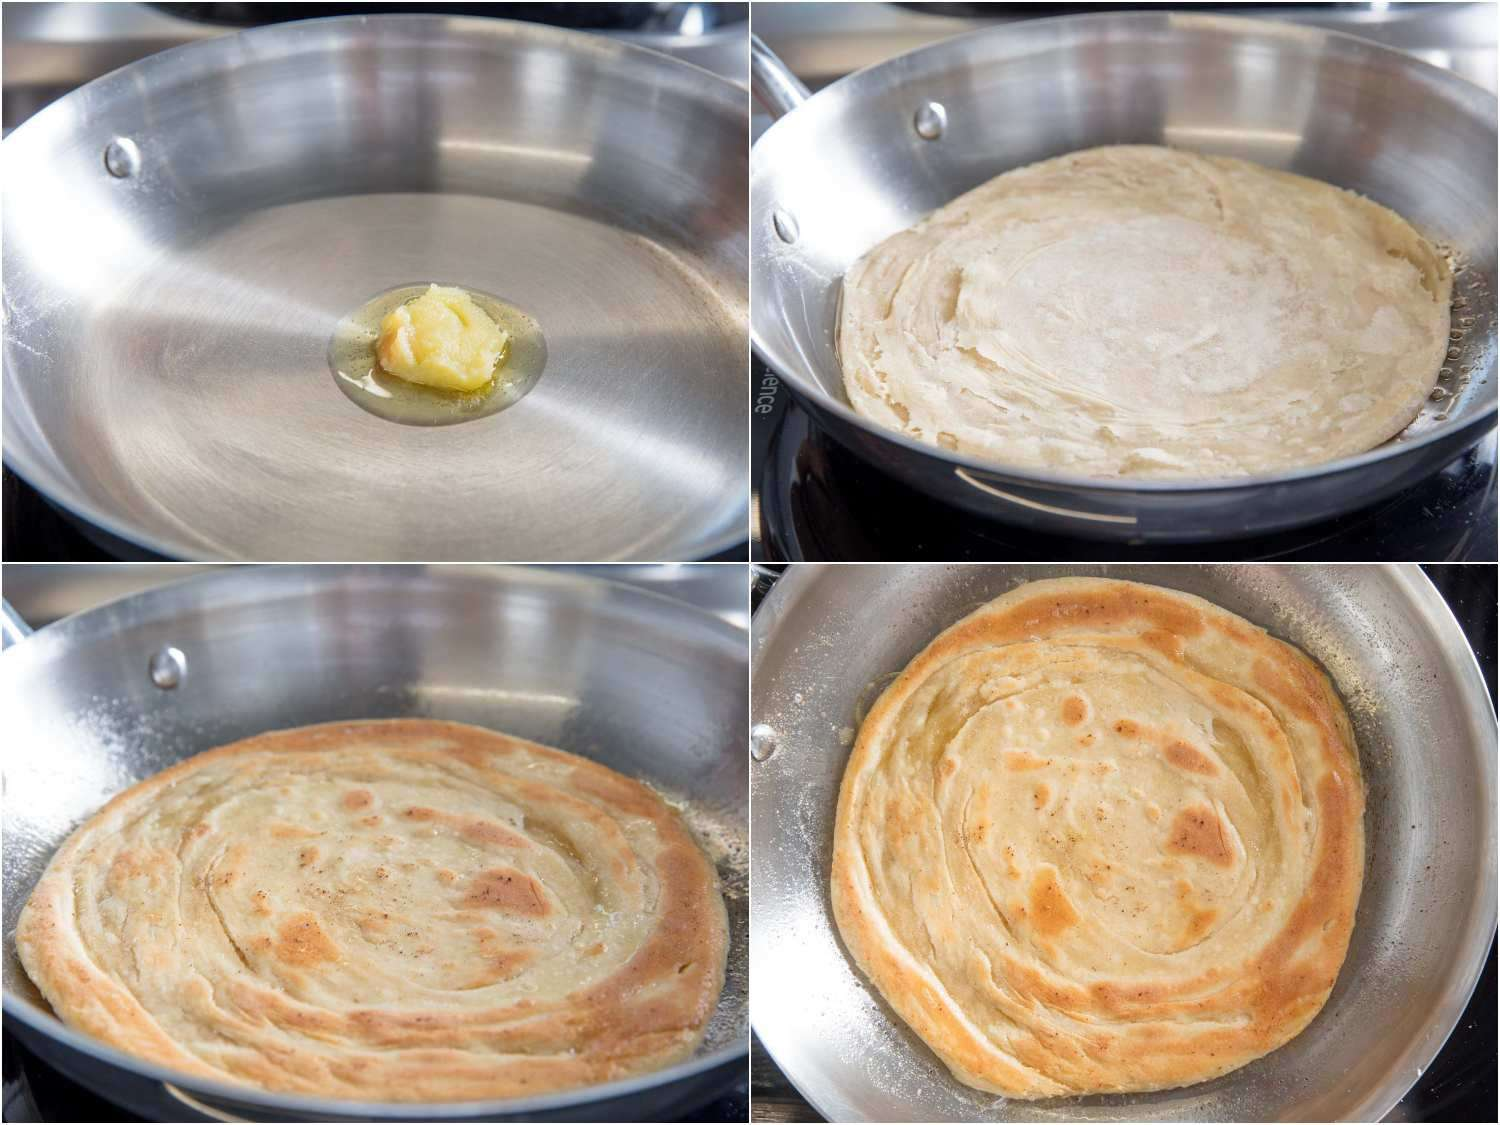 Melting ghee in a skillet and cooking paratha until it's golden brown